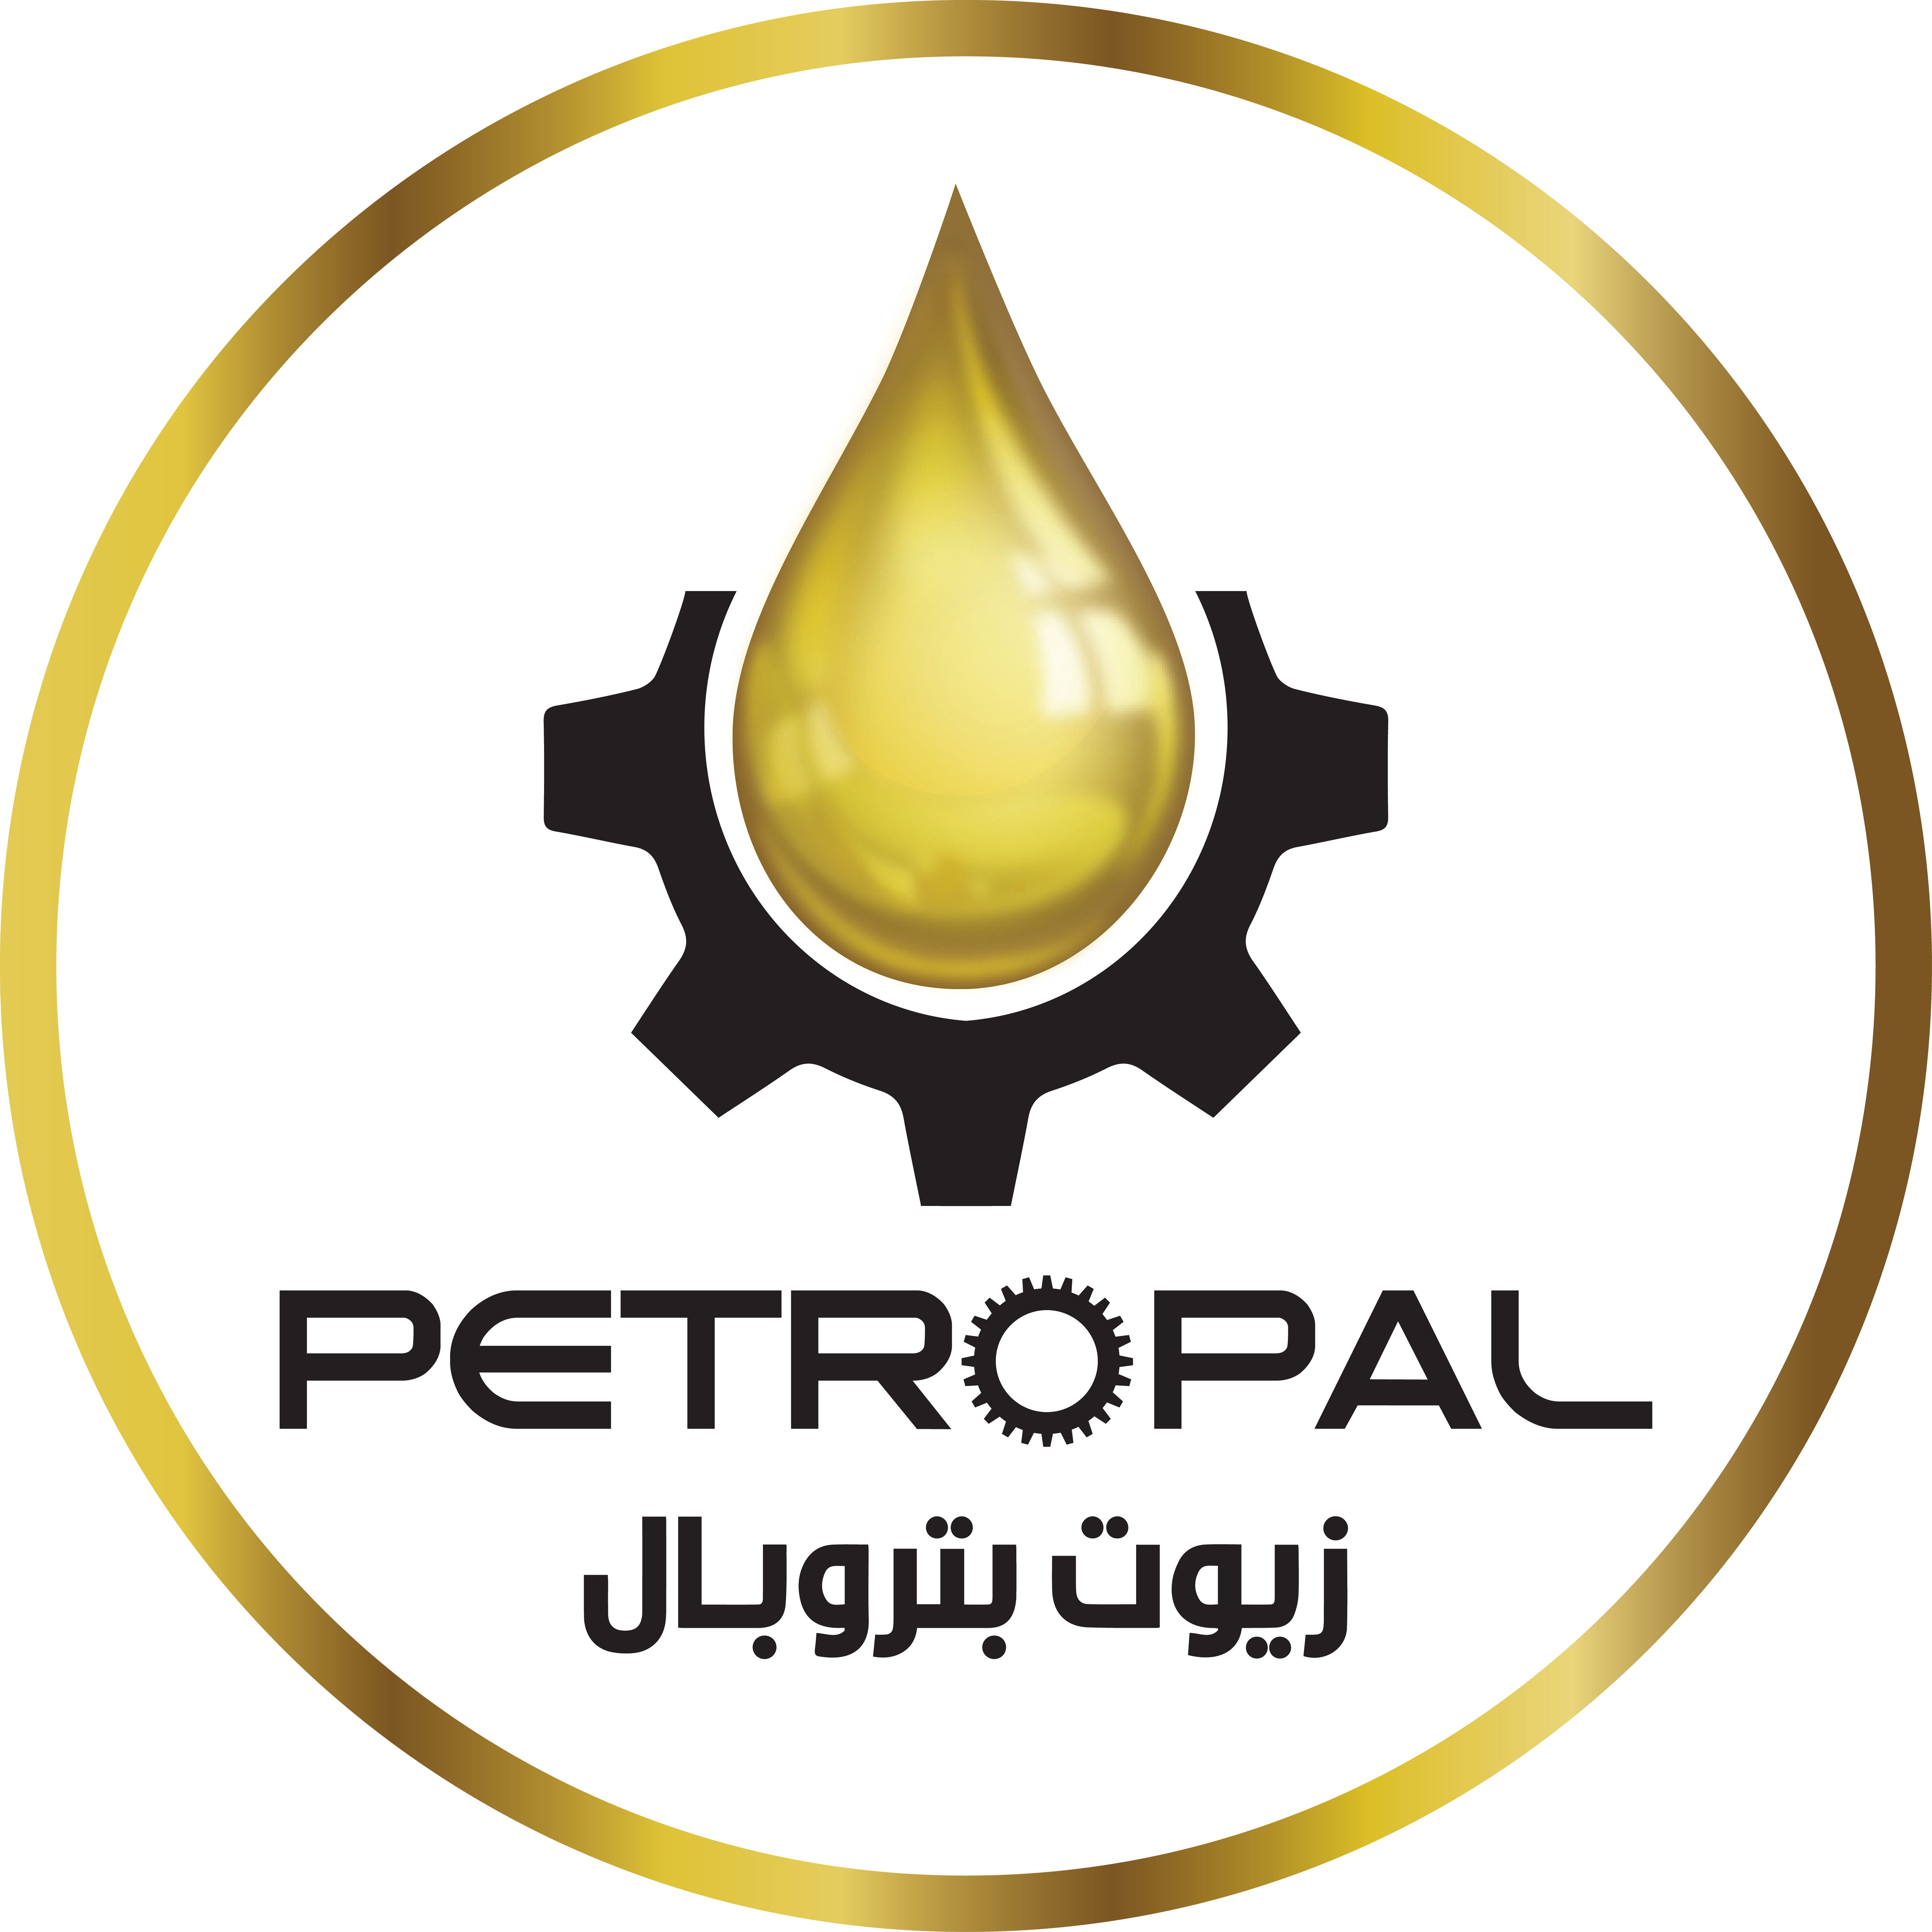 THE PALESTINIAN MINERAL LUBE OIL CO.